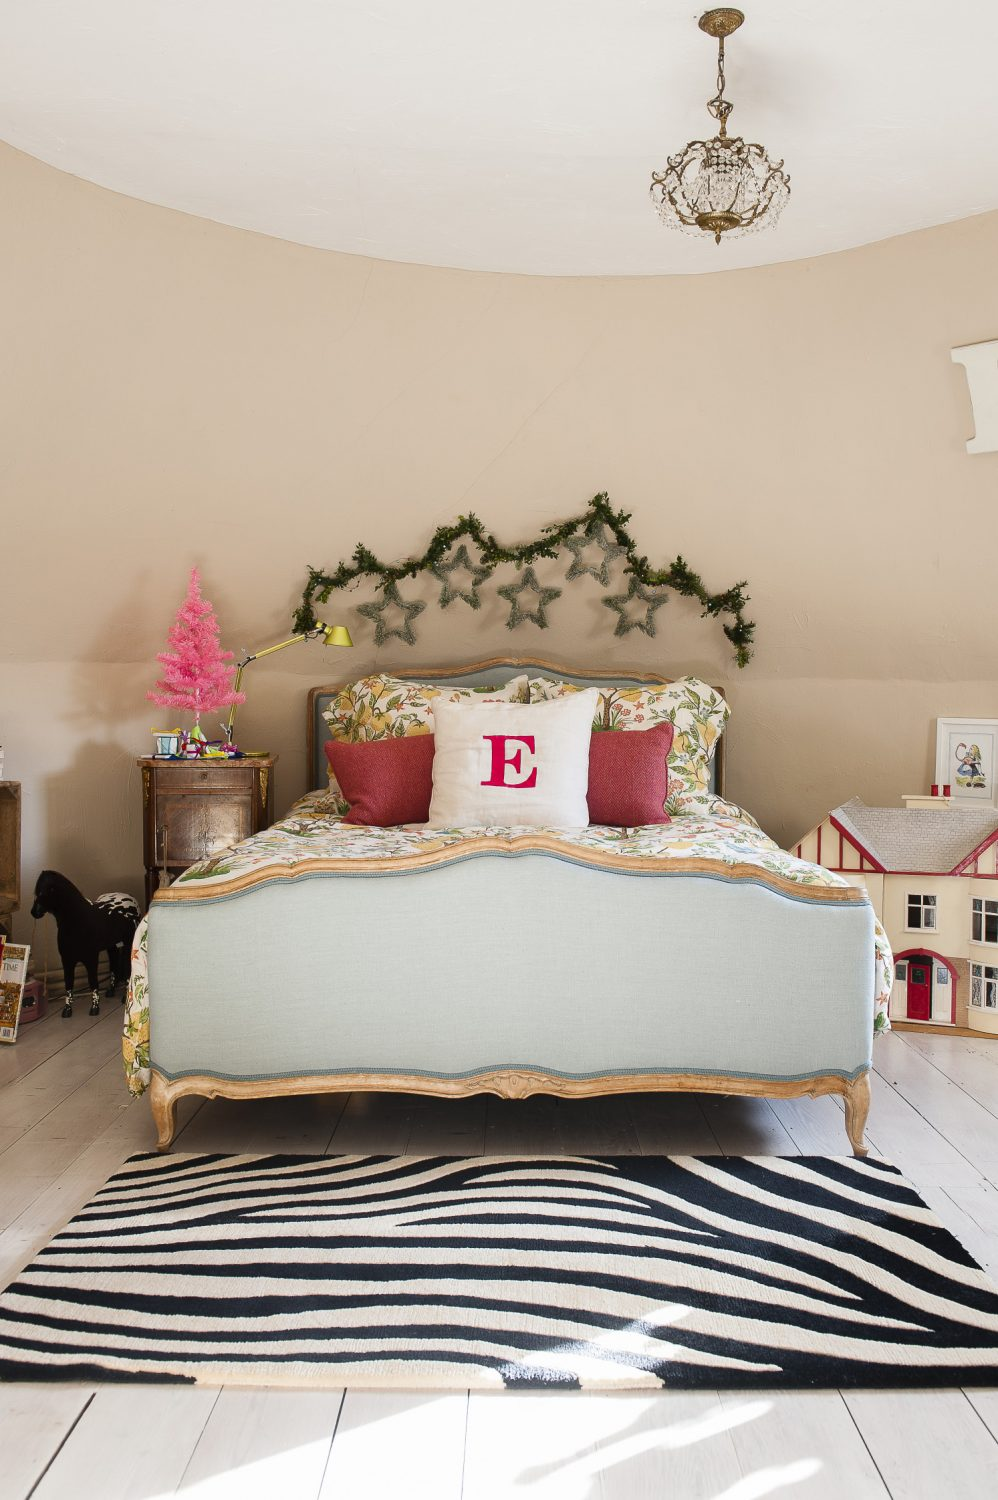 """I love beautiful beds,"" says Kali, ""I spend a long time finding exactly the right one for each room."" The children each have a cushion with their initials on – this one has a big rosy red E for her daughter."